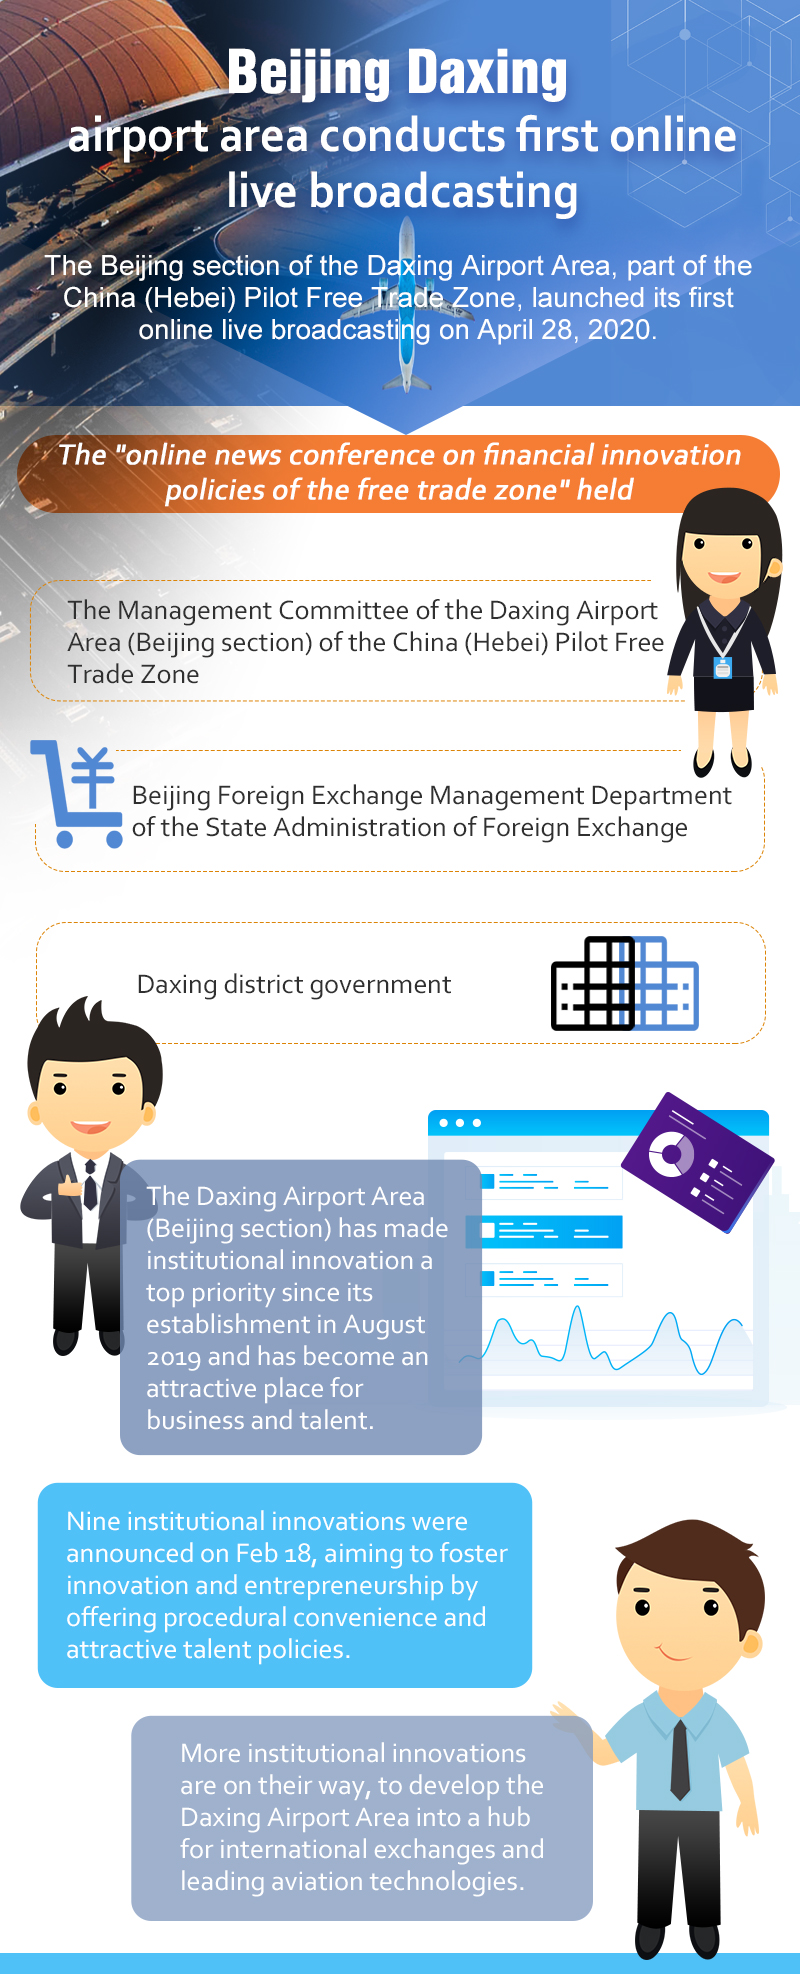 Beijing-Daxing-airport-area-conductsfirst-onlinelivebroadcasting.jpg